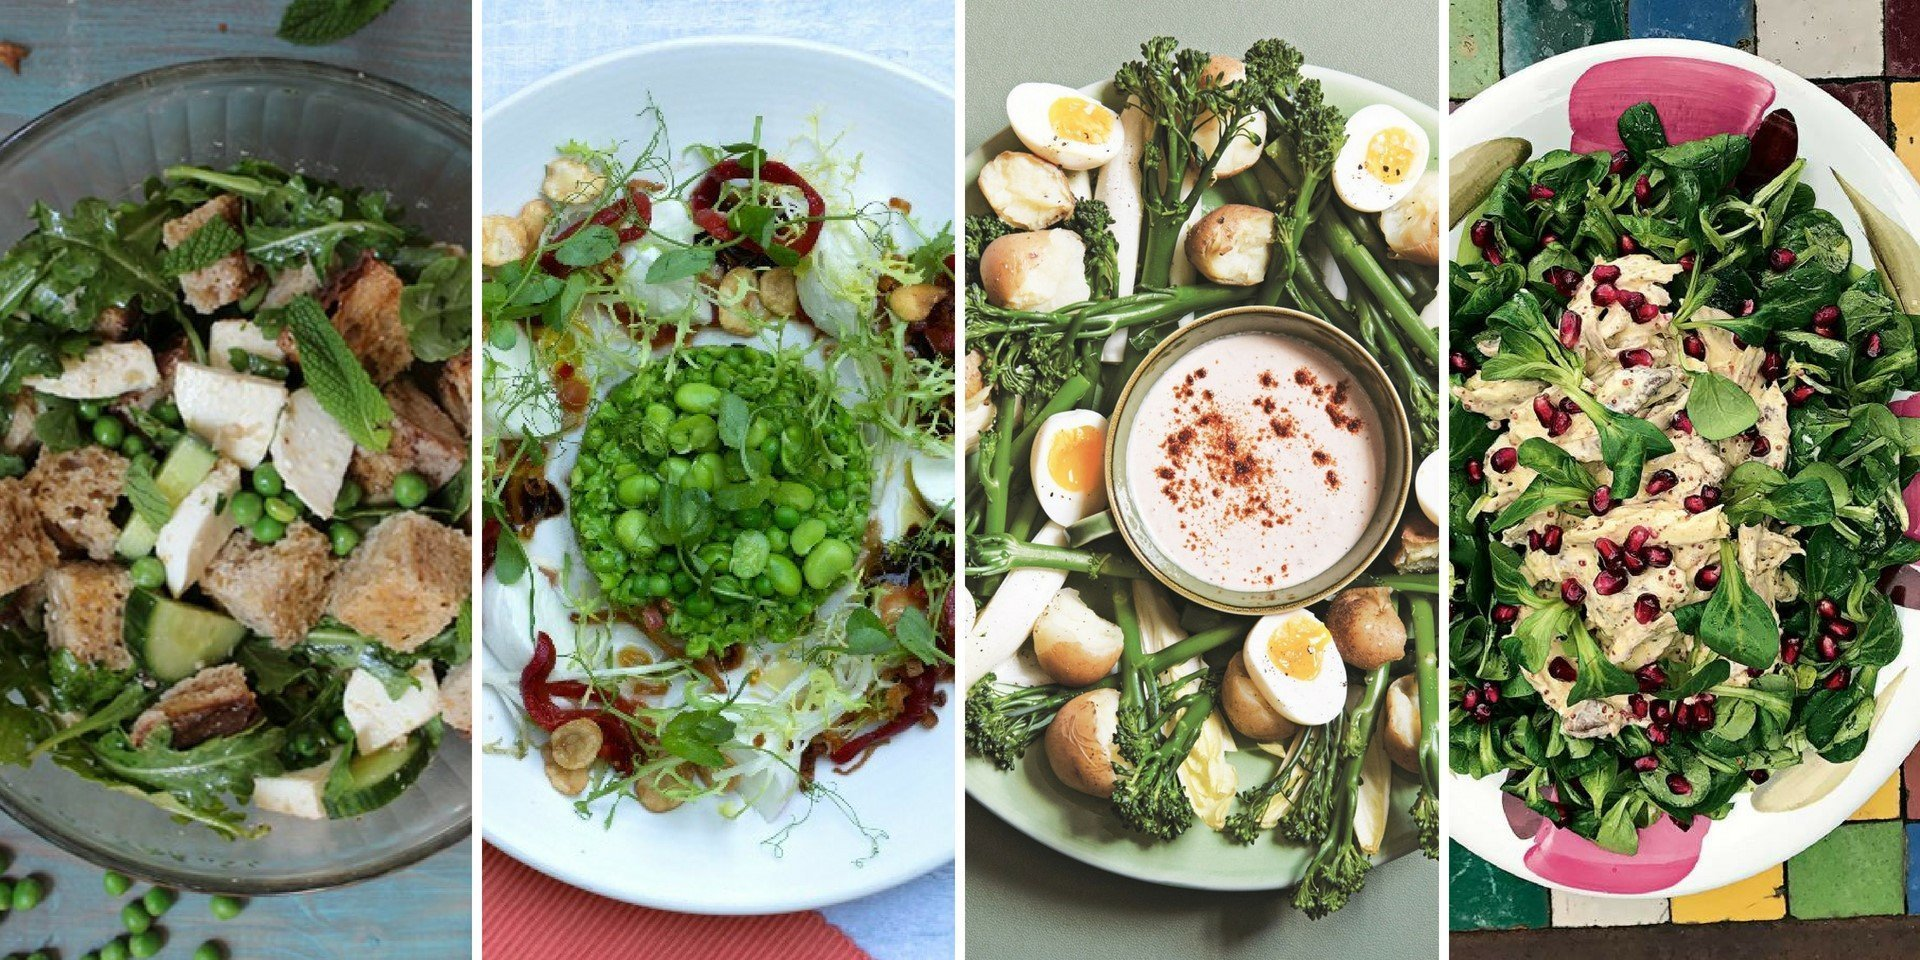 Well-dressed salad recipies for summer